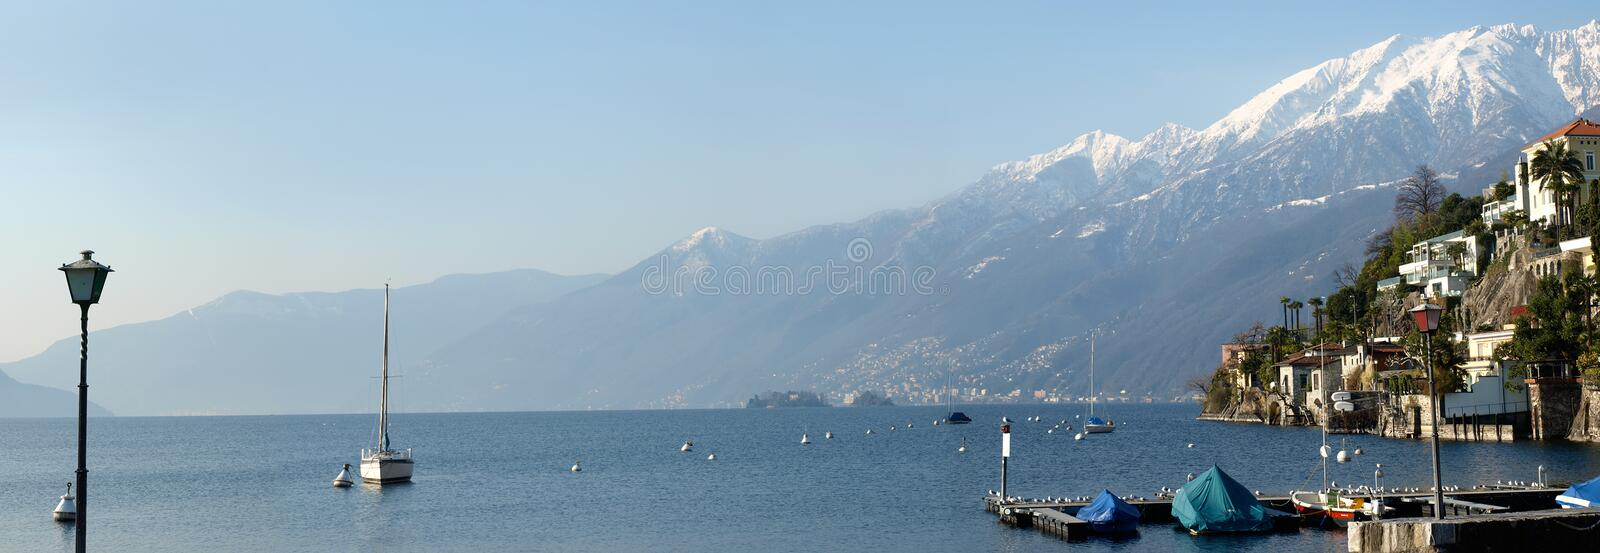 Landscape series - Ascona (Swiss) royalty free stock photography